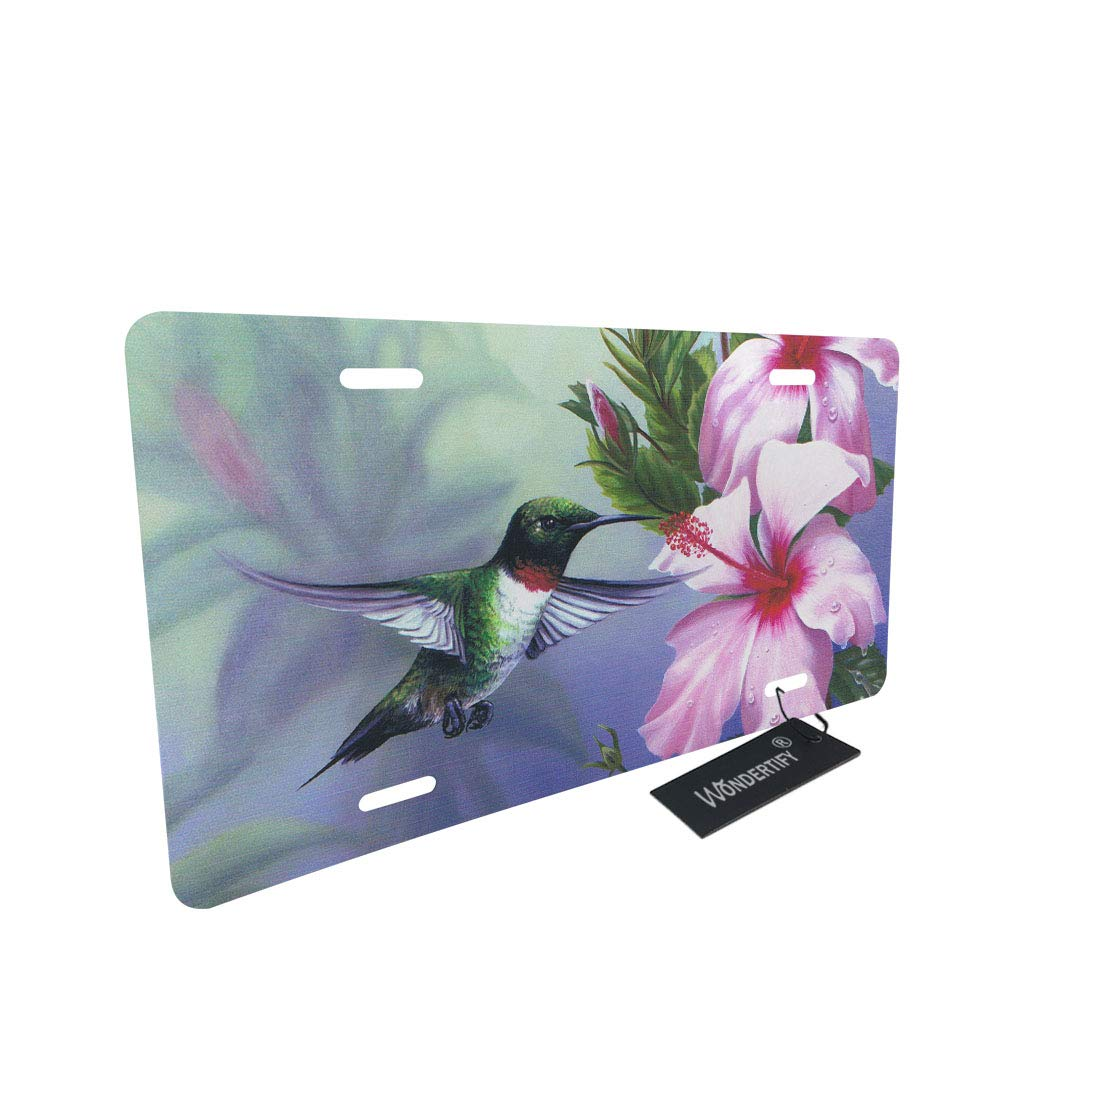 WONDERTIFY License Plate Bird Hummingbird Flay with Flower Pattern Decorative Car Front License Plate,Vanity Tag,Metal Car Plate,Aluminum Novelty License Plate for Men//Women//Boy//Girls Car,6 X 12 Inch